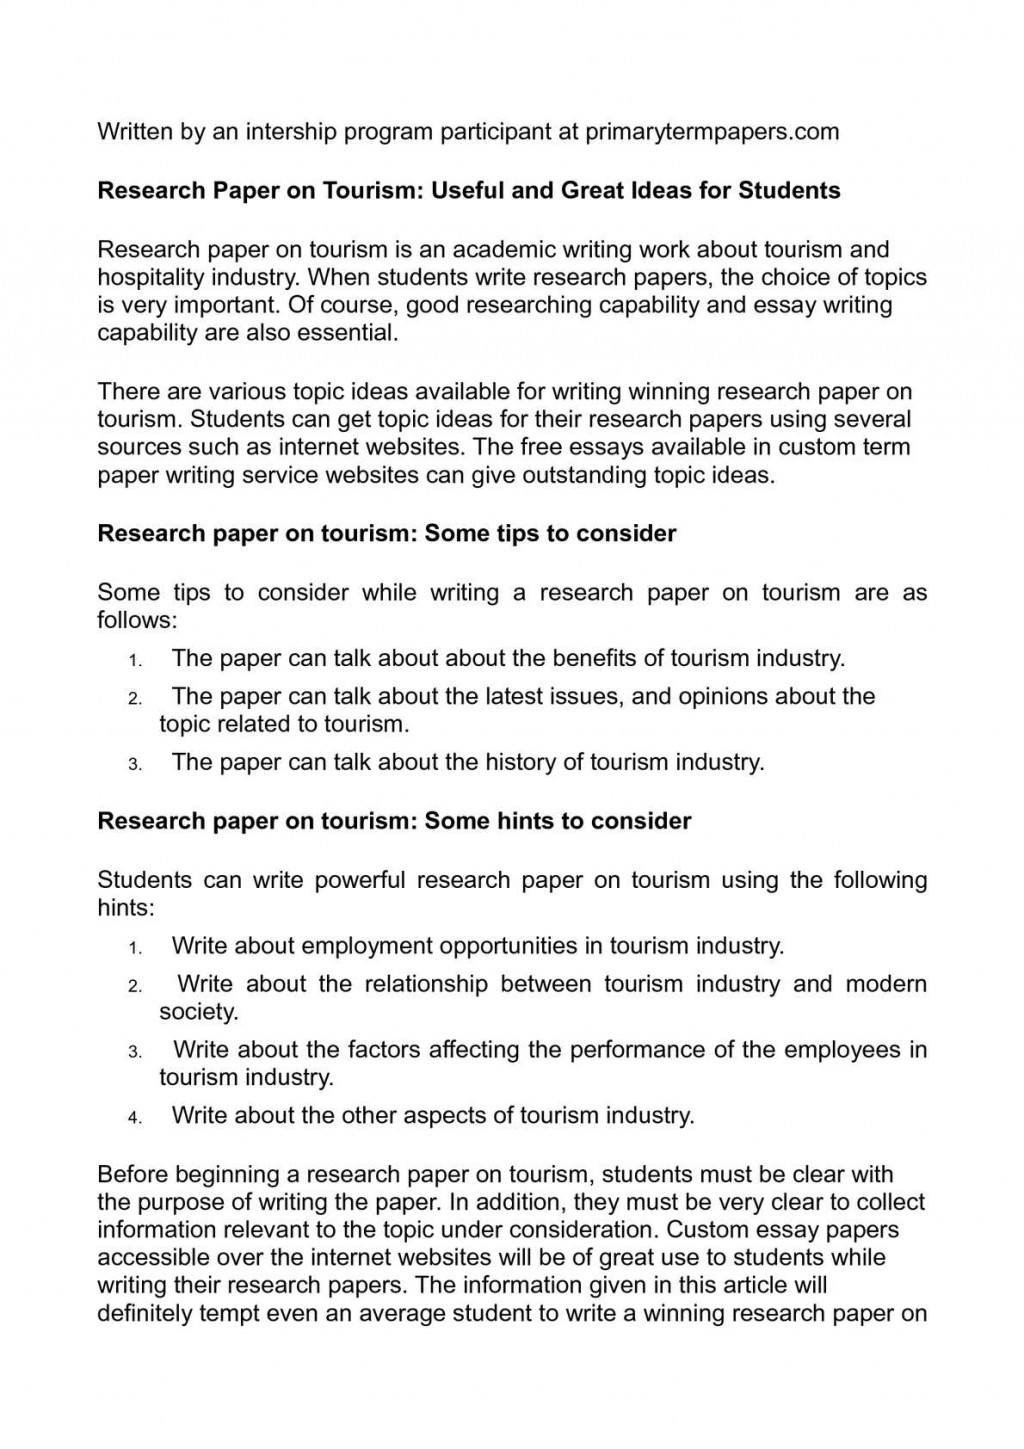 006 Topics To Write Research Paper Stupendous A History On Economics Psychology Large